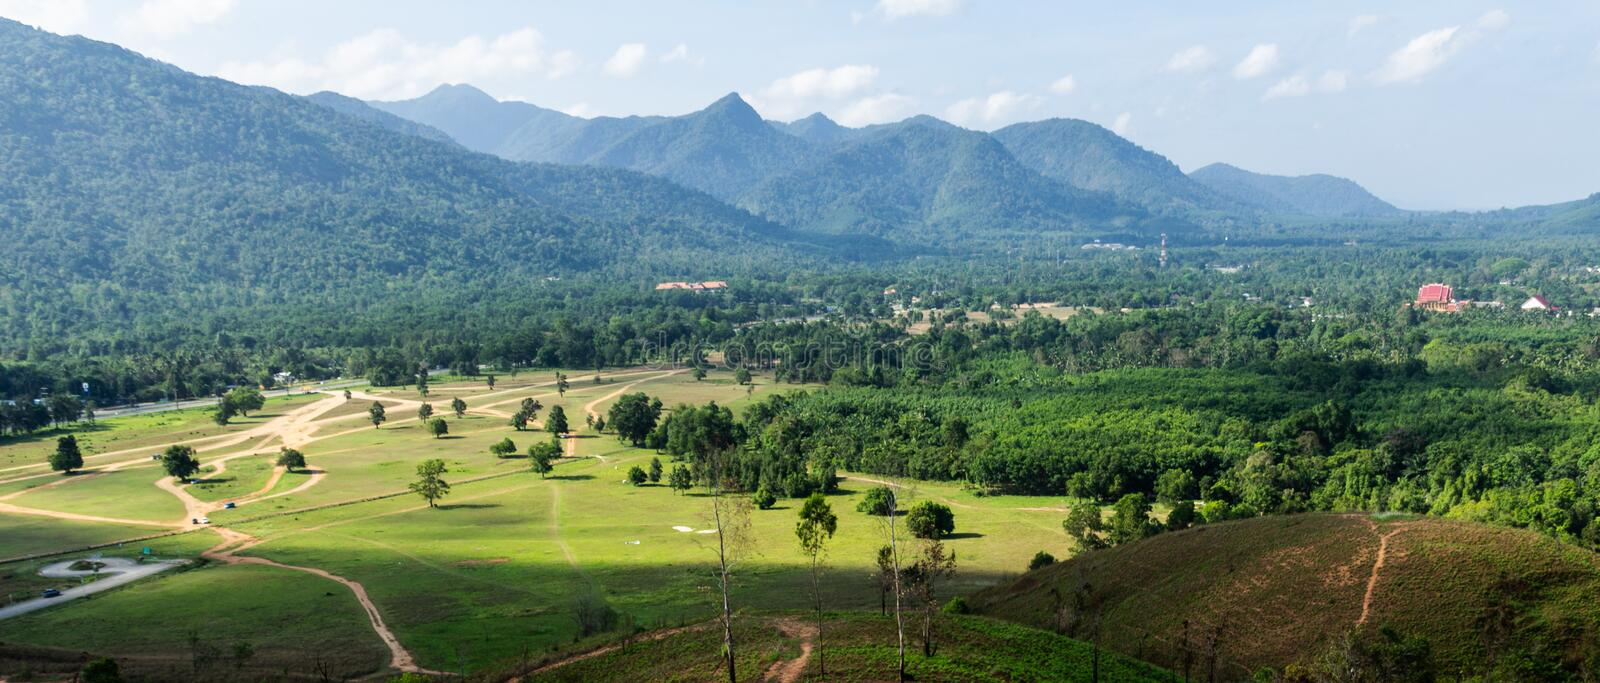 Landscape viewpoint of Grass Mountain. royalty free stock photography